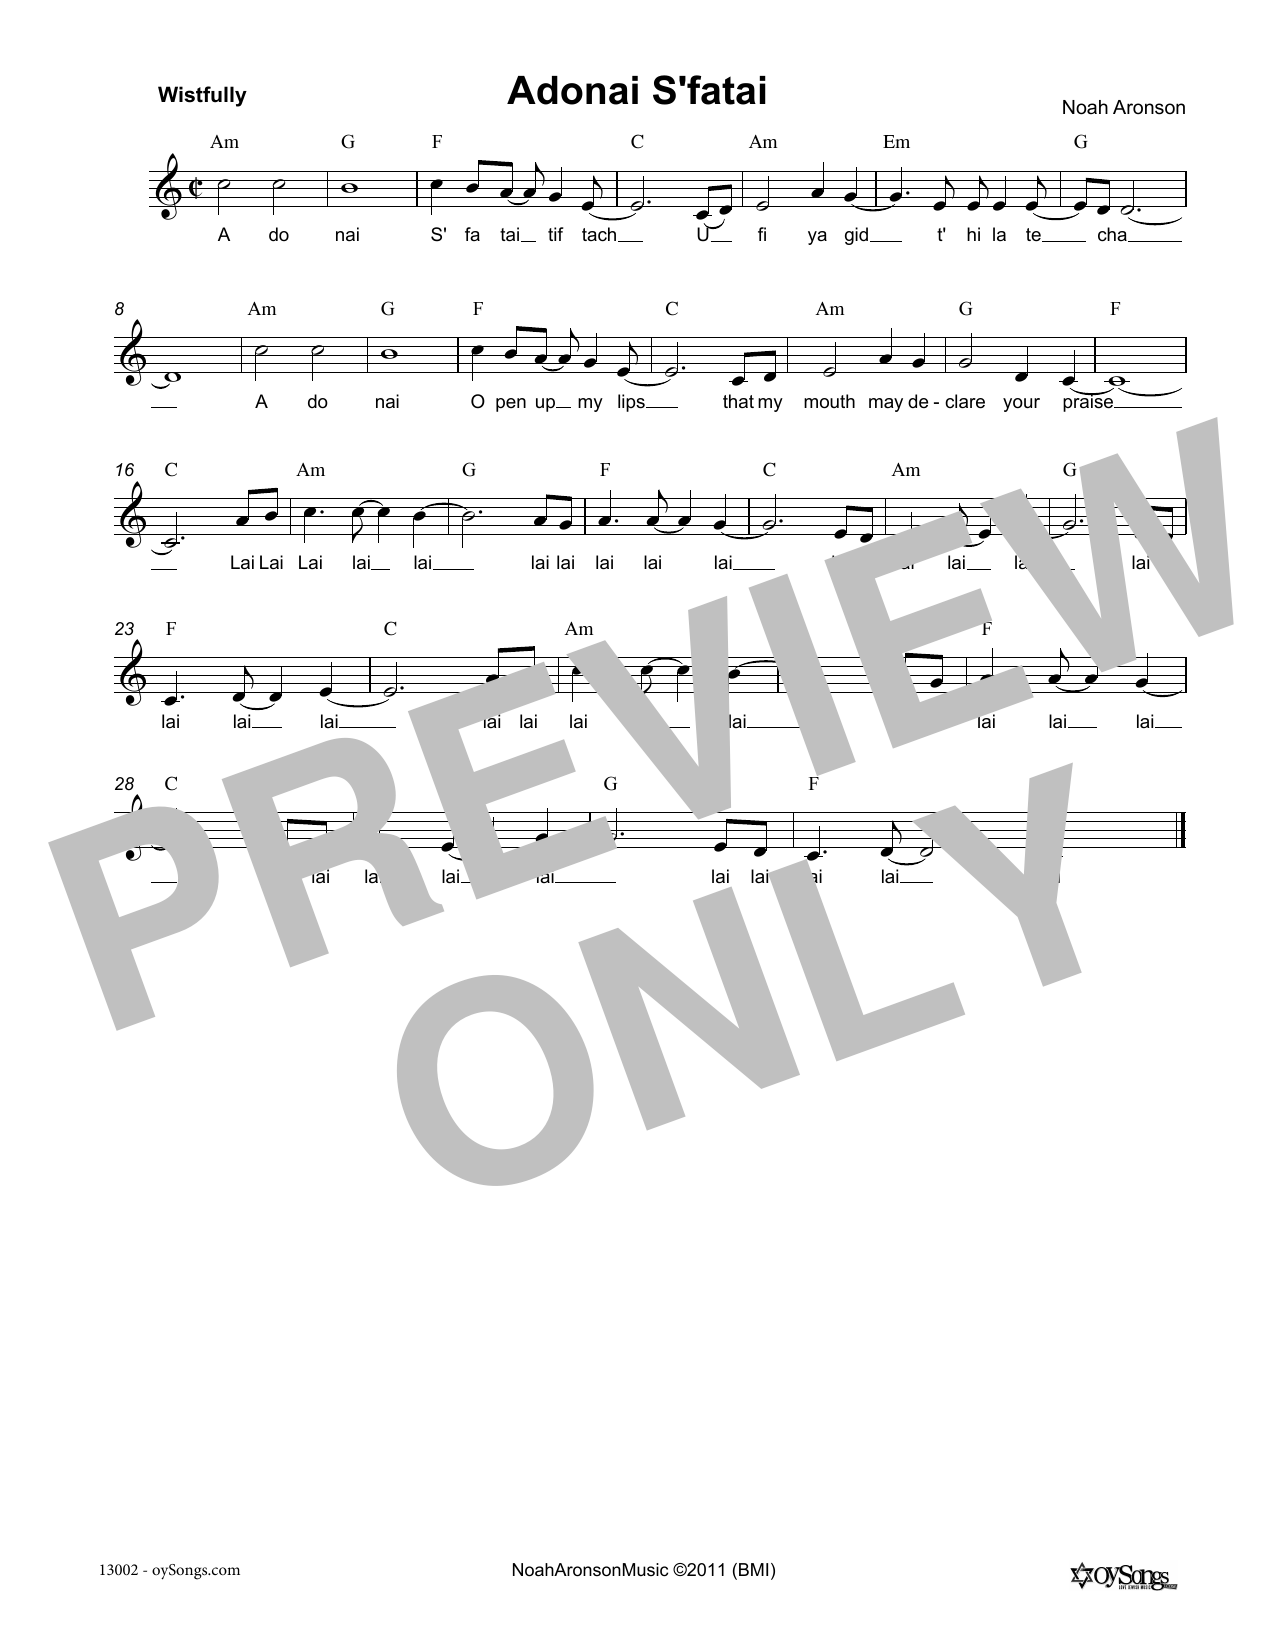 Noah Aronson Adonai S'fatai sheet music notes and chords. Download Printable PDF.